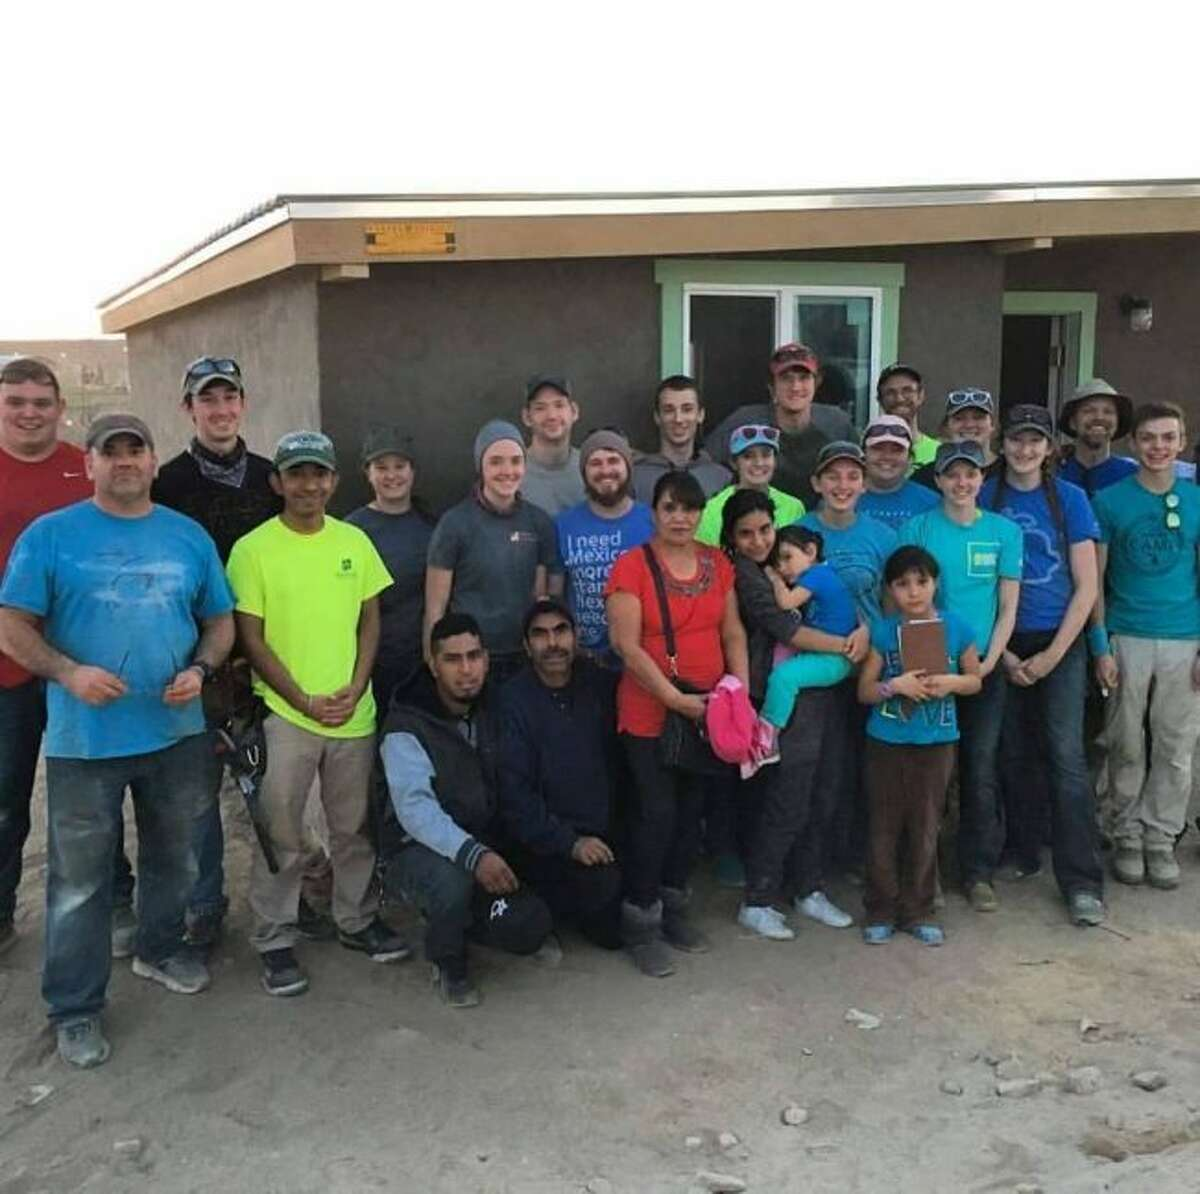 DEDICATION: A group of students stand with the family they built a house for in Juarez, Mexico. (Submitted photos)